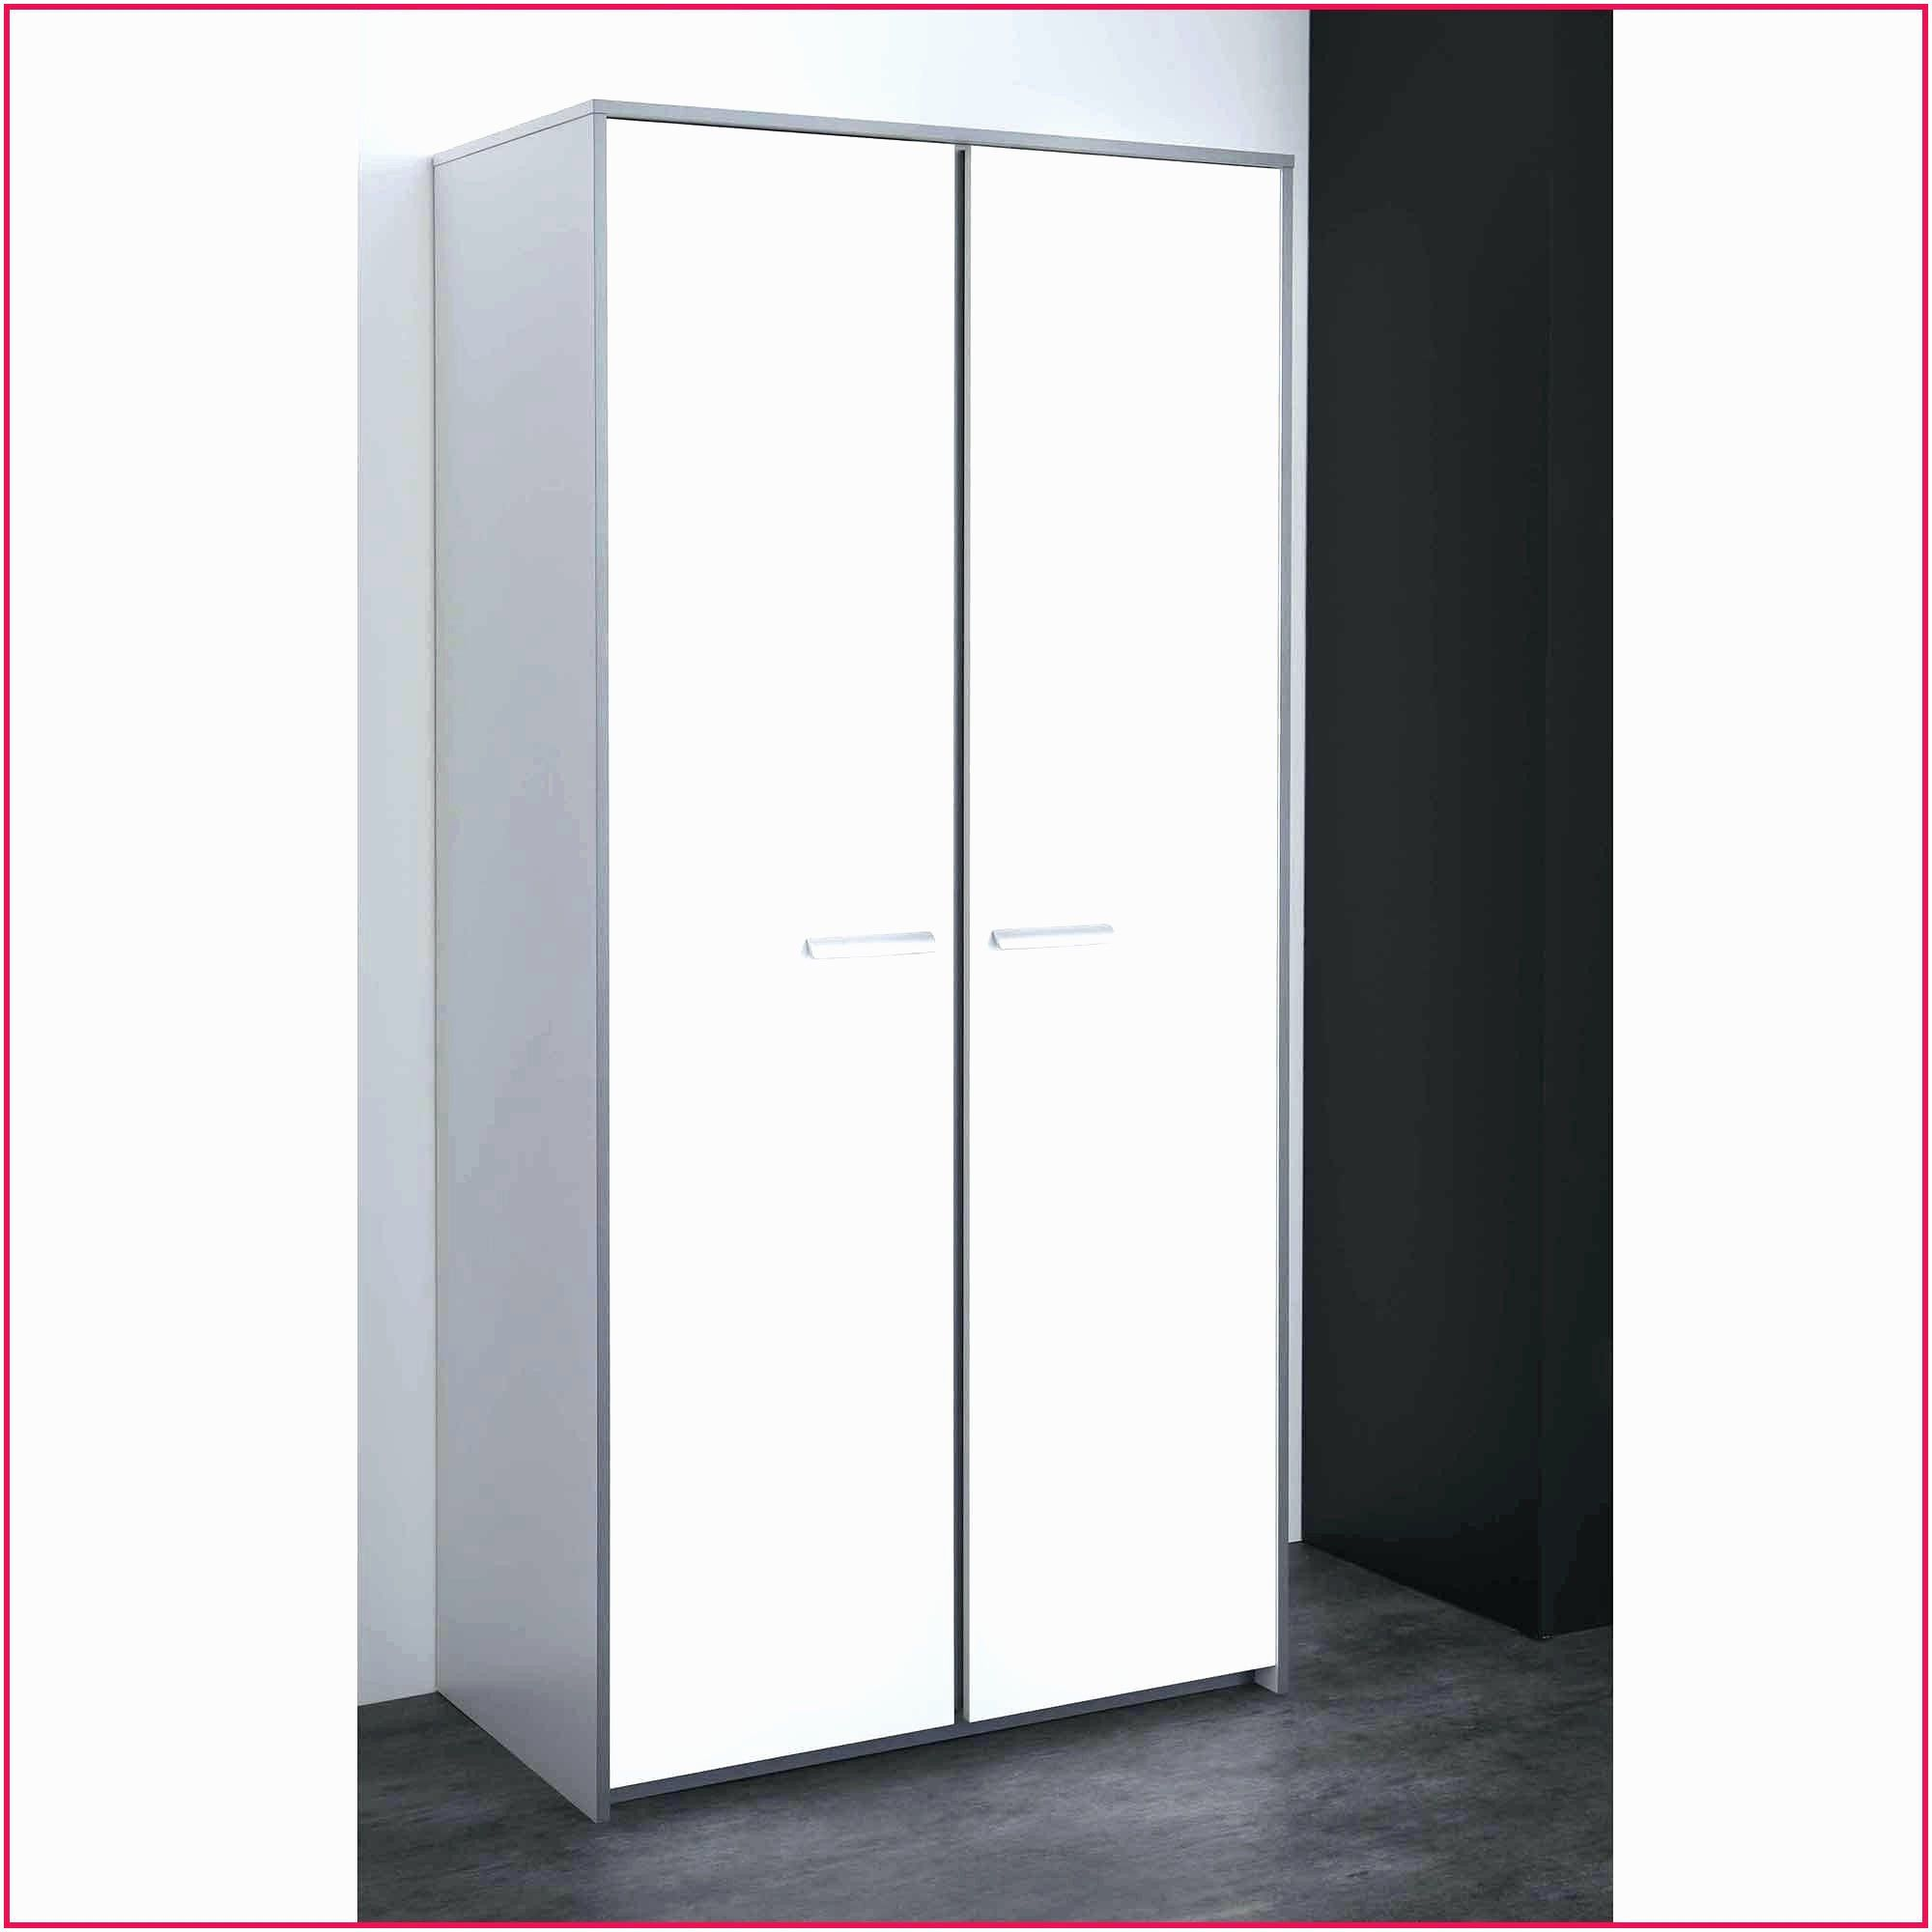 Armoire Dressing Porte Coulissante Armoire Dressing Porte Coulissante Toutes Les Armoires Dressing Deco Armoir Tall Cabinet Storage Storage Cabinet Armoire